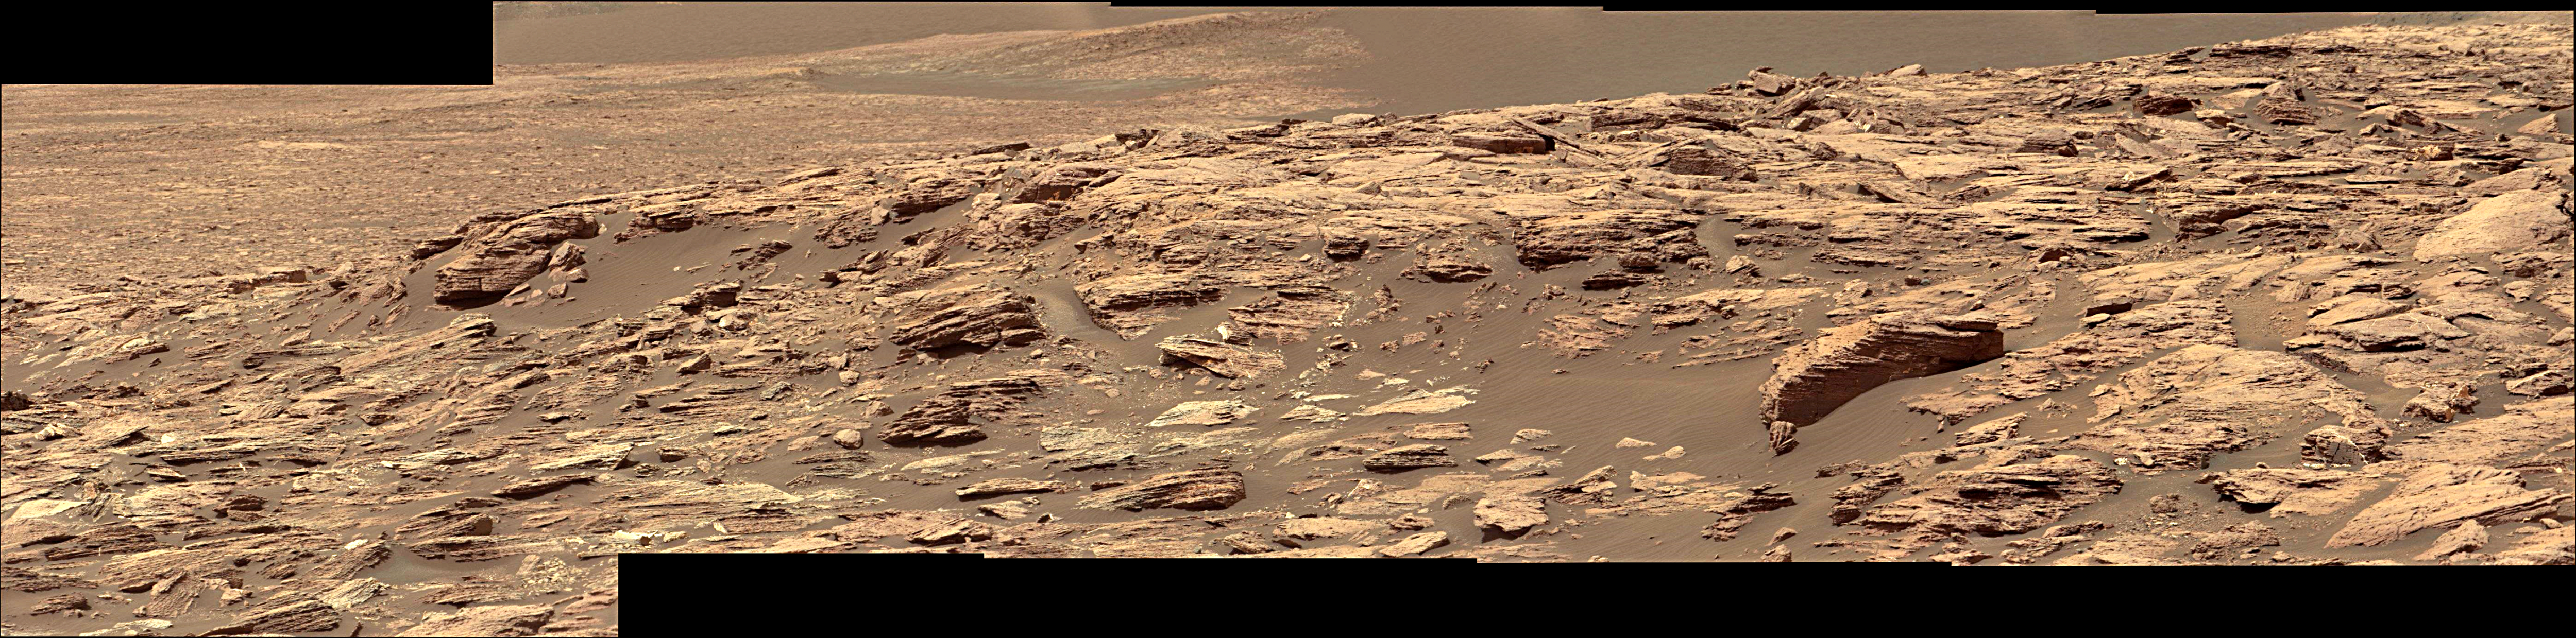 panoramic-curiosity-rover-view-1e-sol-1493-was-life-on-mars